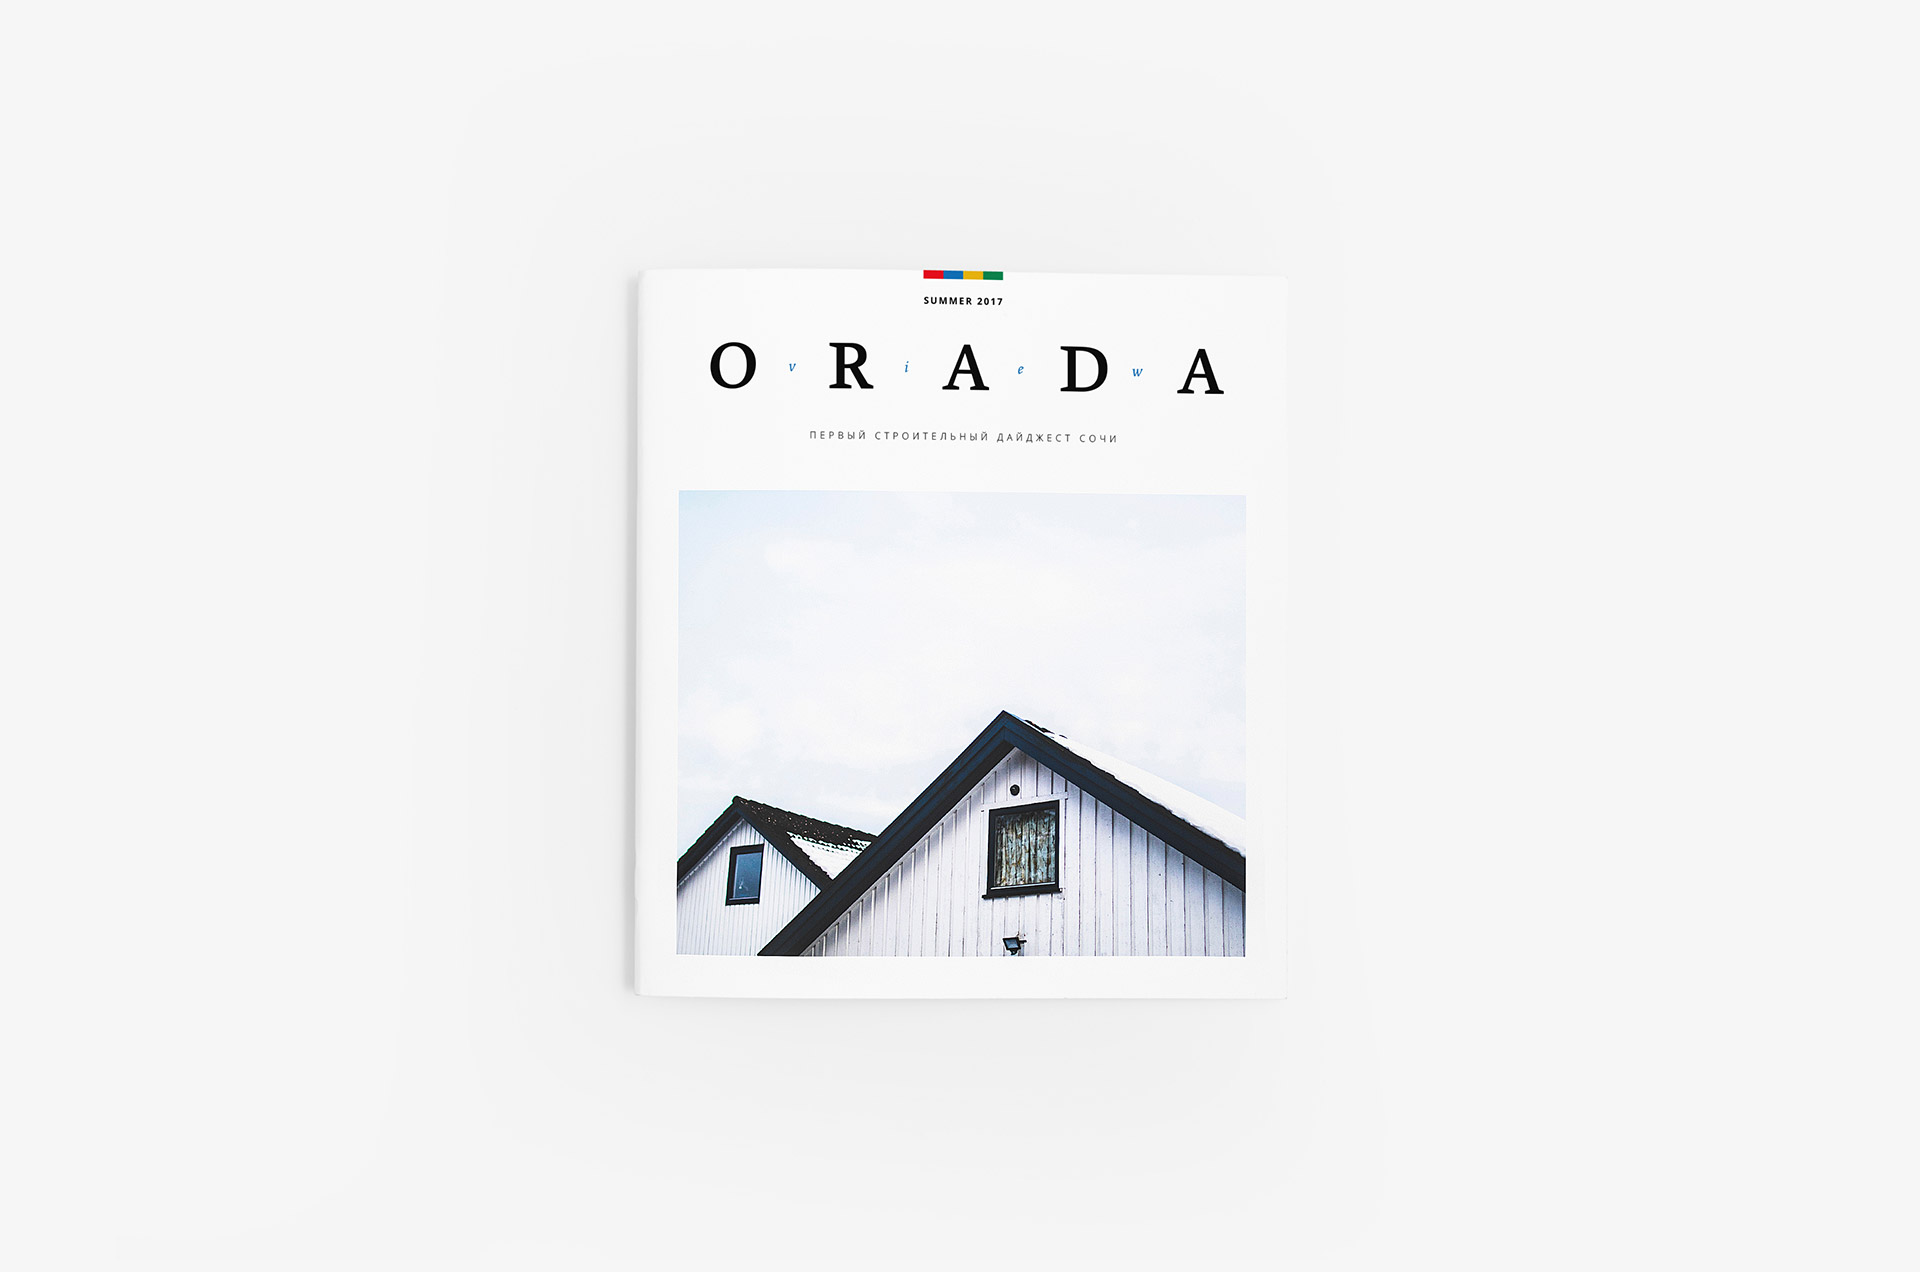 Верстка журнала ORADA. Концепция, дизайн и верстка от Alex Koin Design